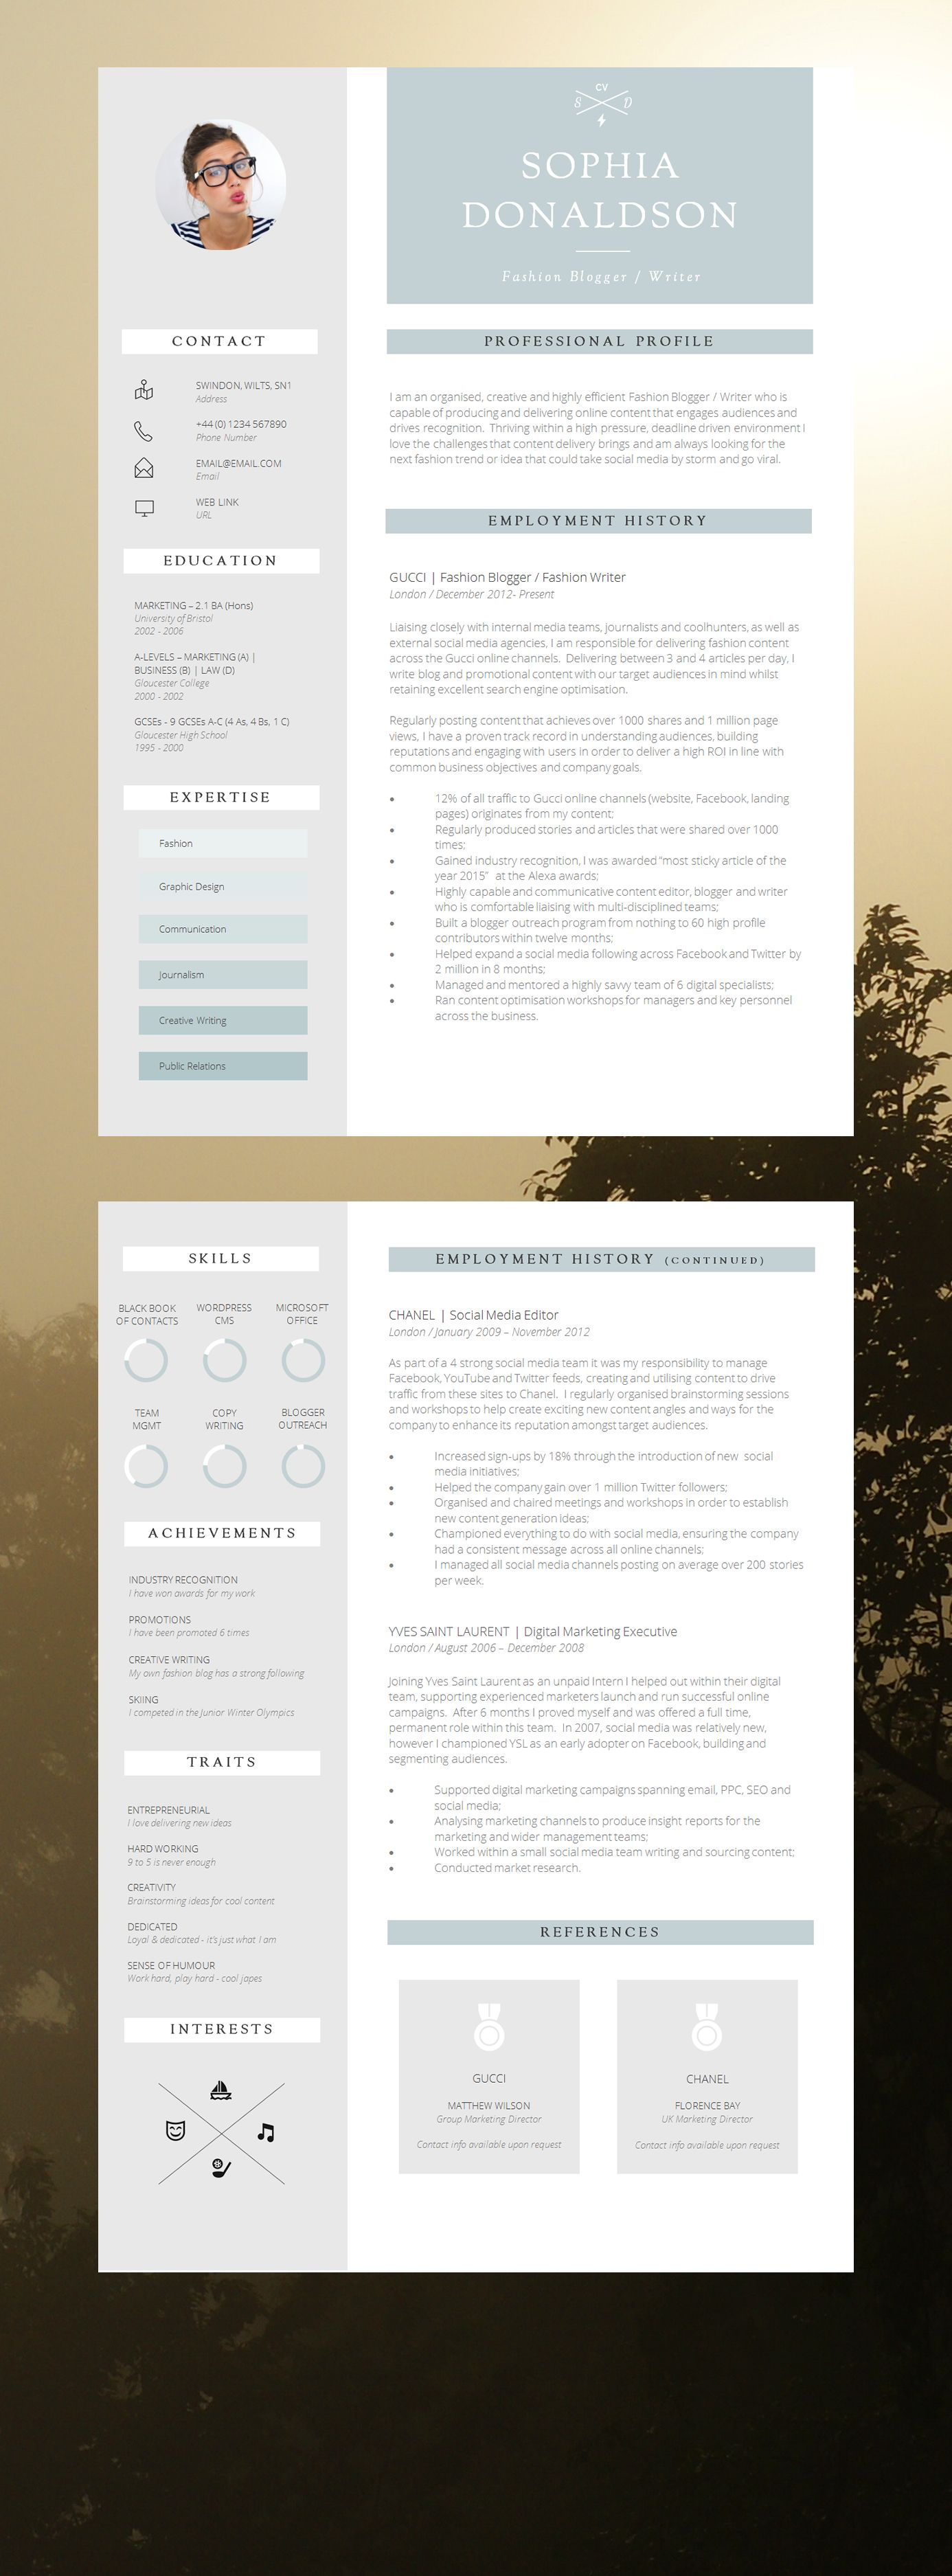 Resume Cv Templates Free Download%0A Download Experienced Resume Format